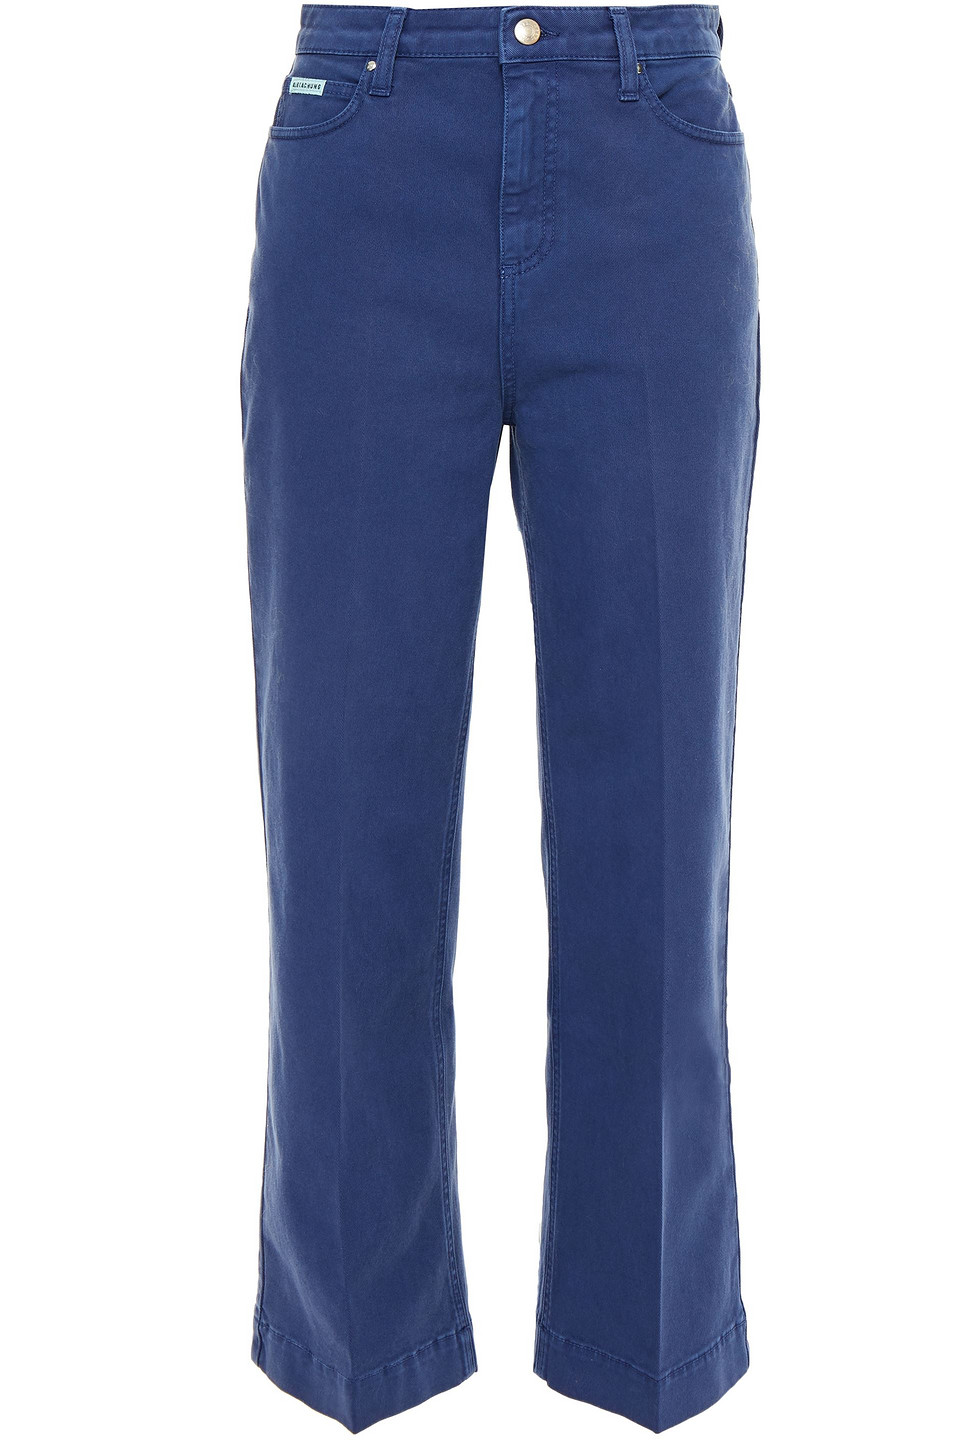 ALEXACHUNG | Alexachung Woman Cropped Wide-leg Jeans Indigo | Clouty